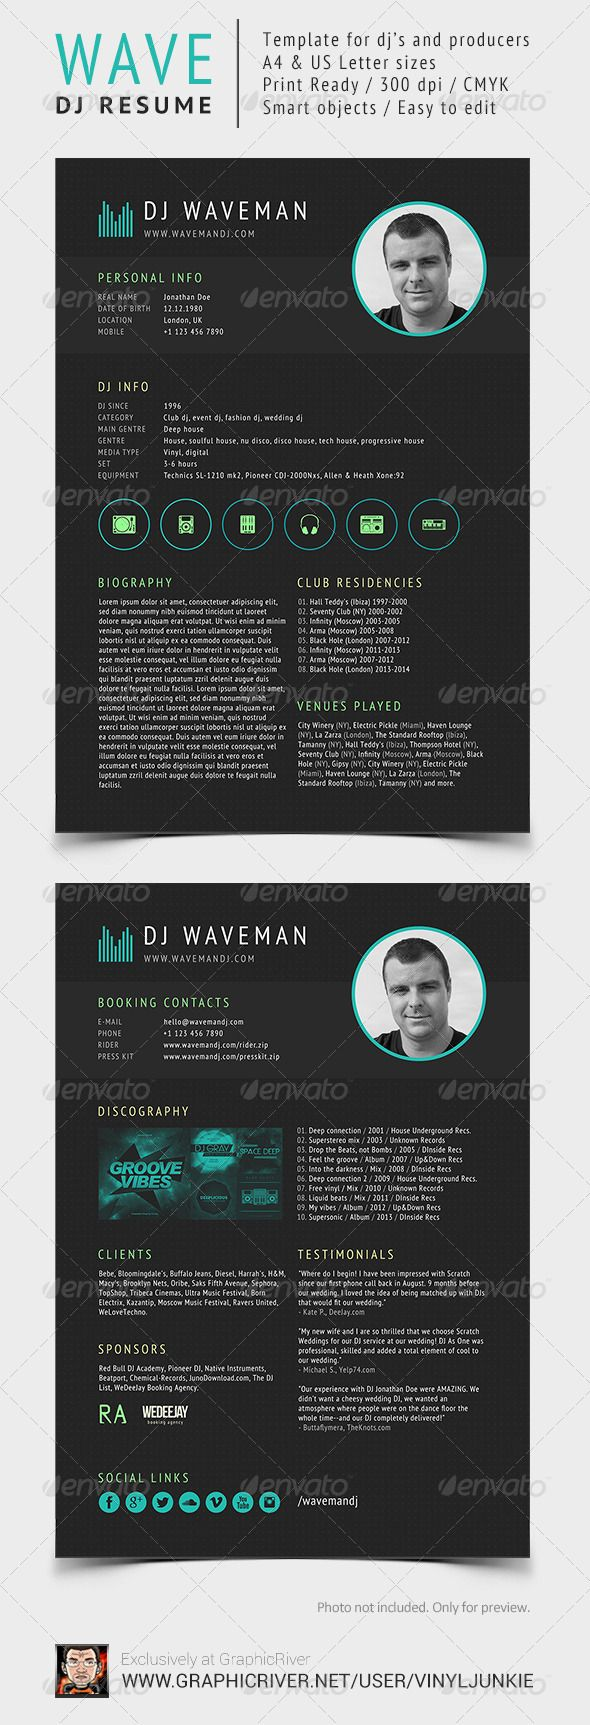 radio dj resume sample dj resume resume format pdf how to layout a resume samples of resumes layout for